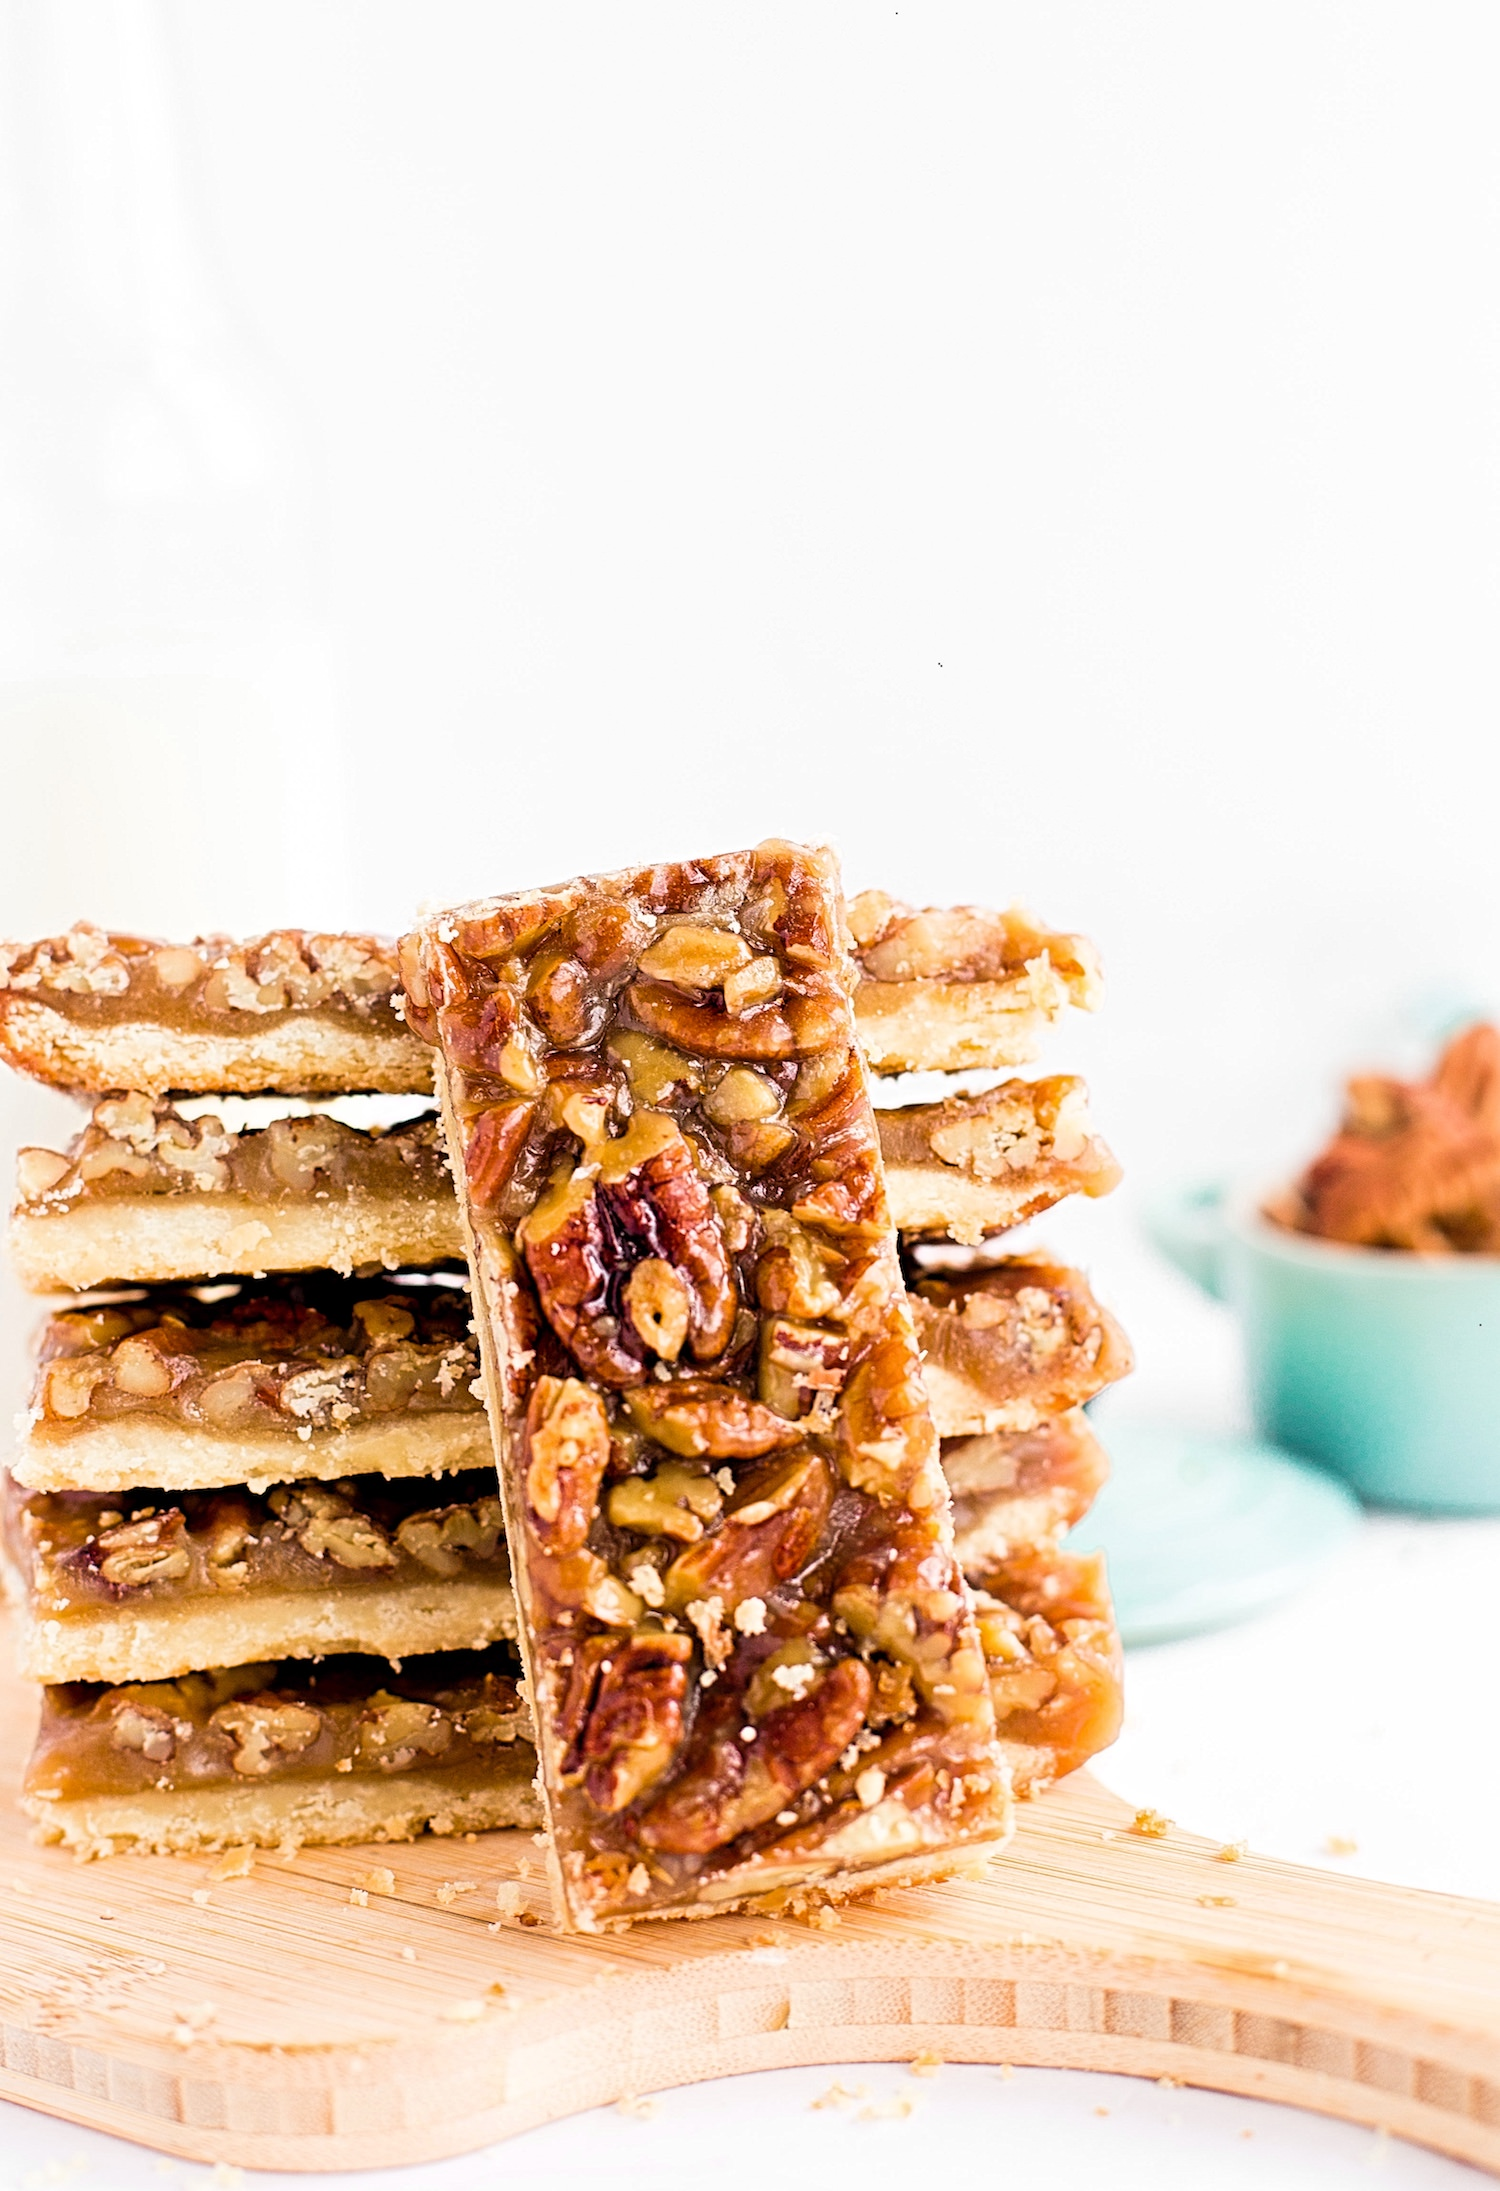 Whisk Pecan Pie Bars 3.jpgPecan Pie Bars: flaky, buttery crust topped with a sweet, buttery pecan pie mixture, yielding crispy, crunchy, chewy, soft, buttery, caramely, sweet + salty pecan pie bars. | TrufflesandTrends.com